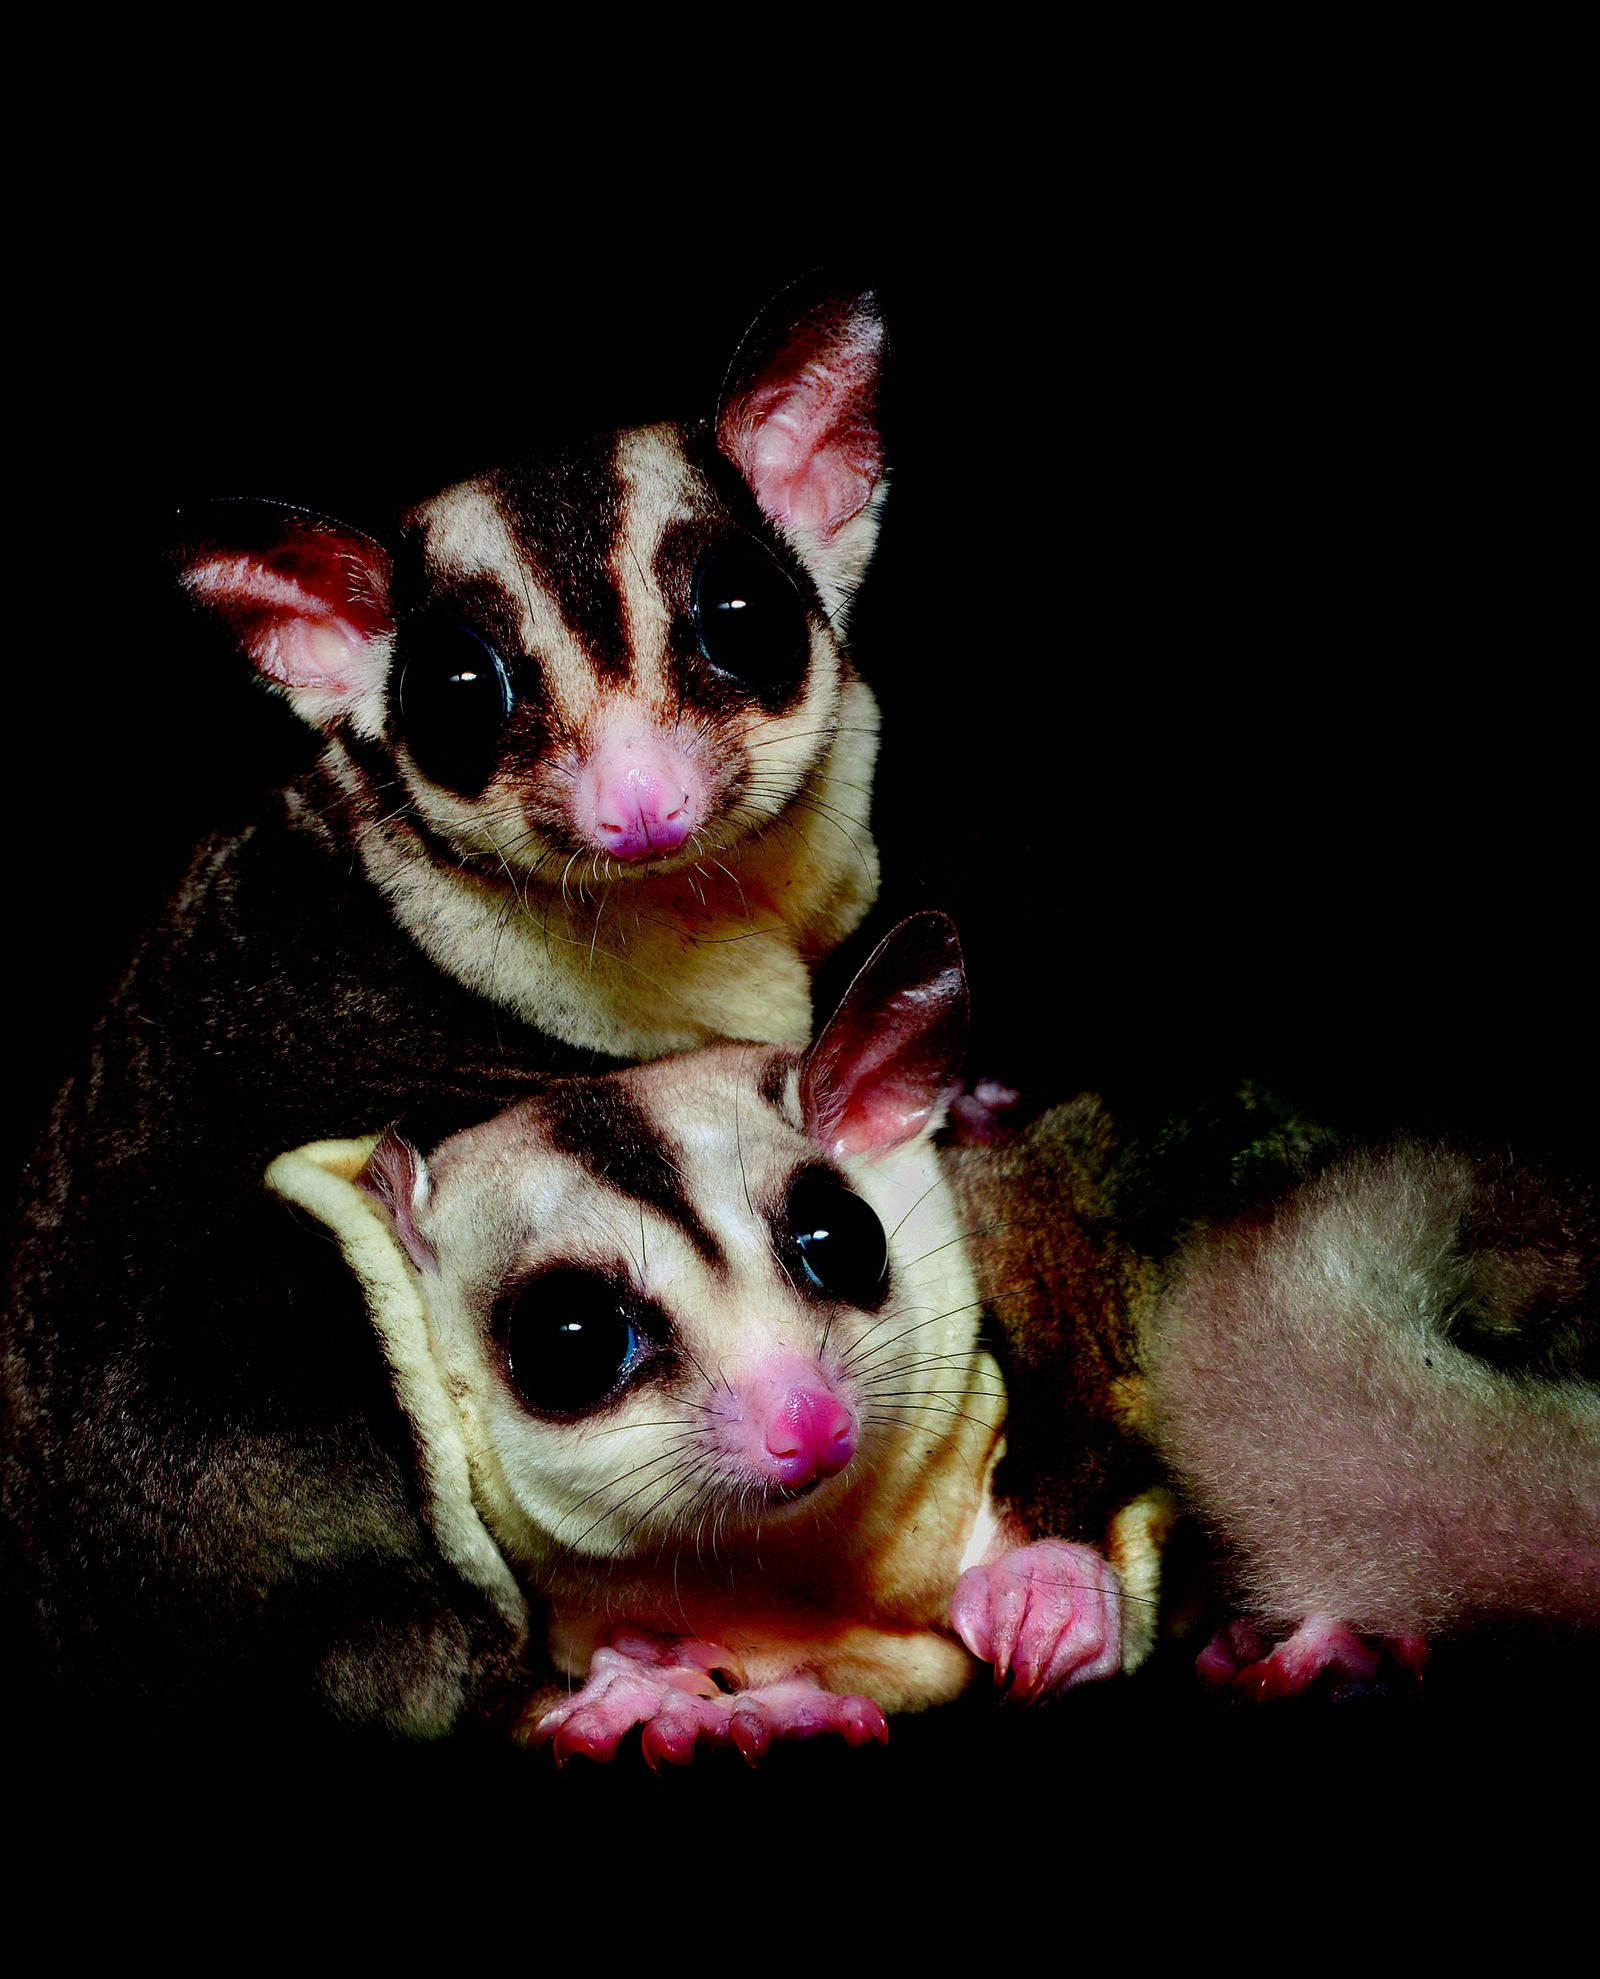 Adorable Portraits Put Nocturnal Animals in the Spotlight | Science